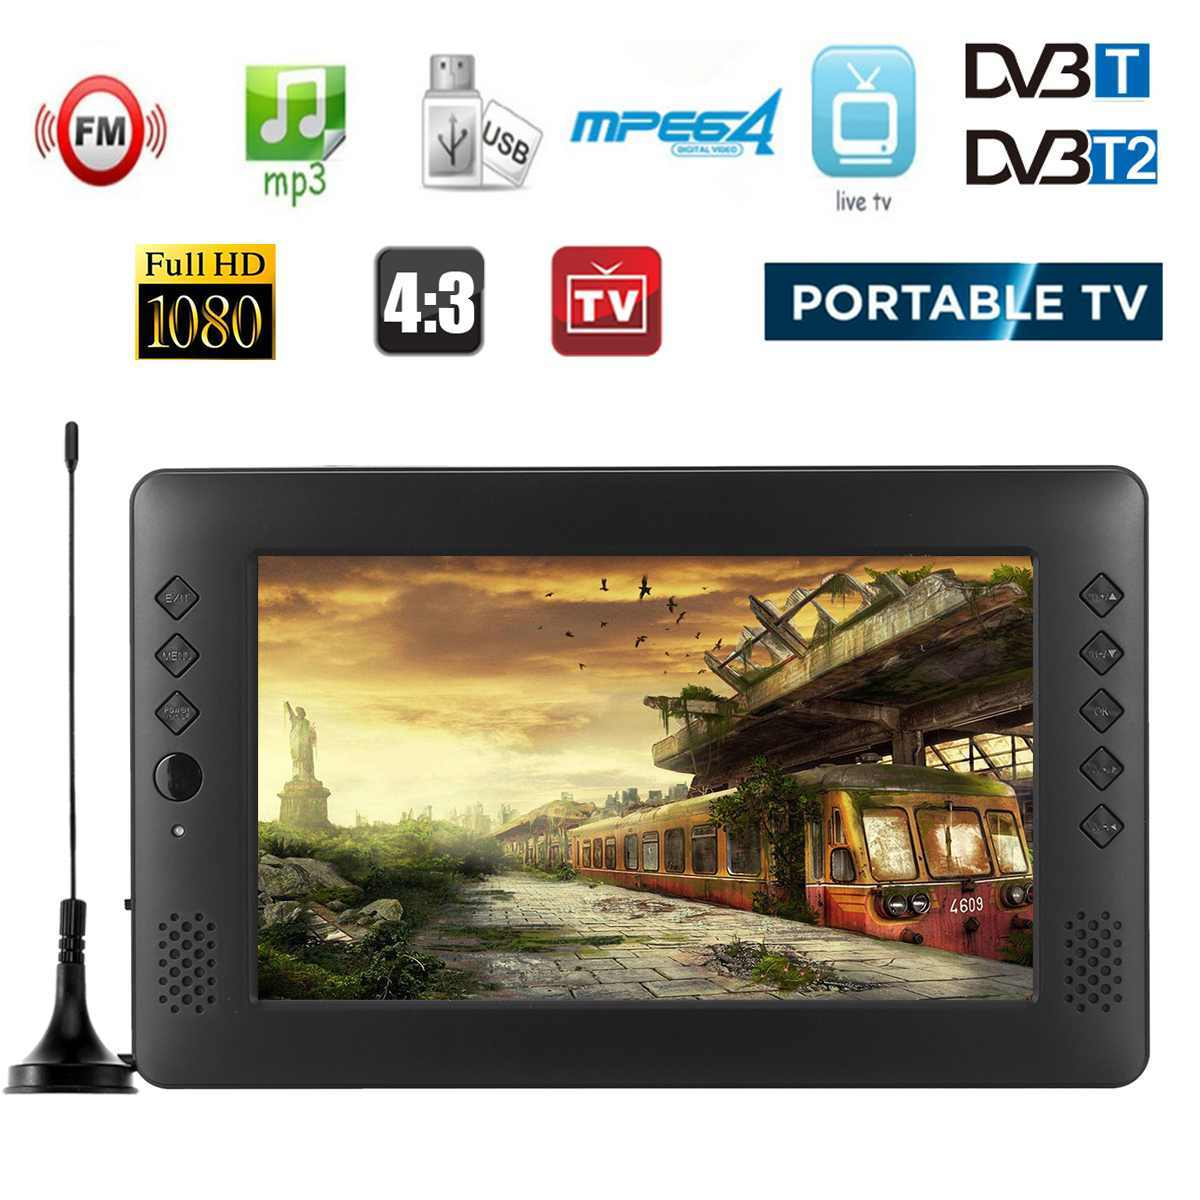 12V 9 Inci HD Portable Mini Wifi Digital dan Analog TV DVB-T2 DVB-T DTV ATV Mobil Televisi Pintar Usb TF Kartu MP4 Audio Video